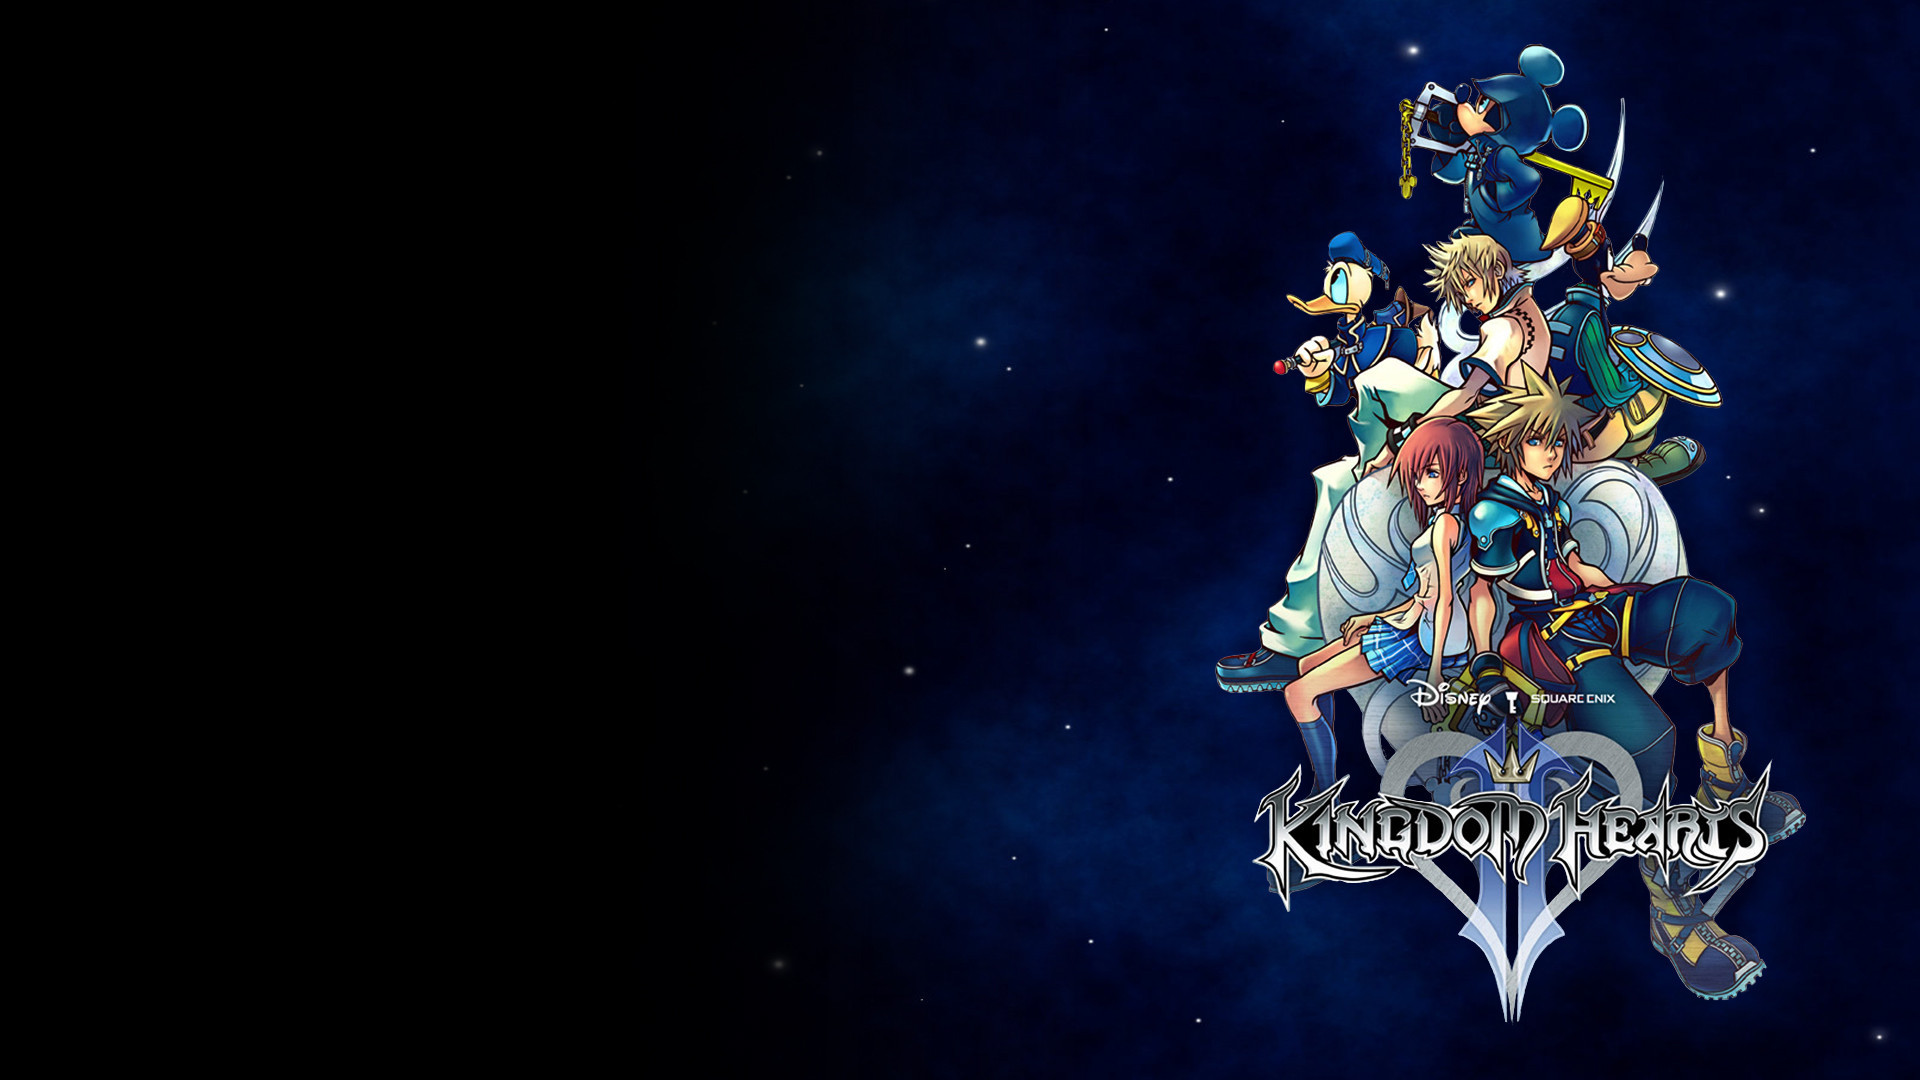 Here is a collection of Kingdom Hearts wallpapers that I compiled. Feel  free to use them as your own wallpapers.